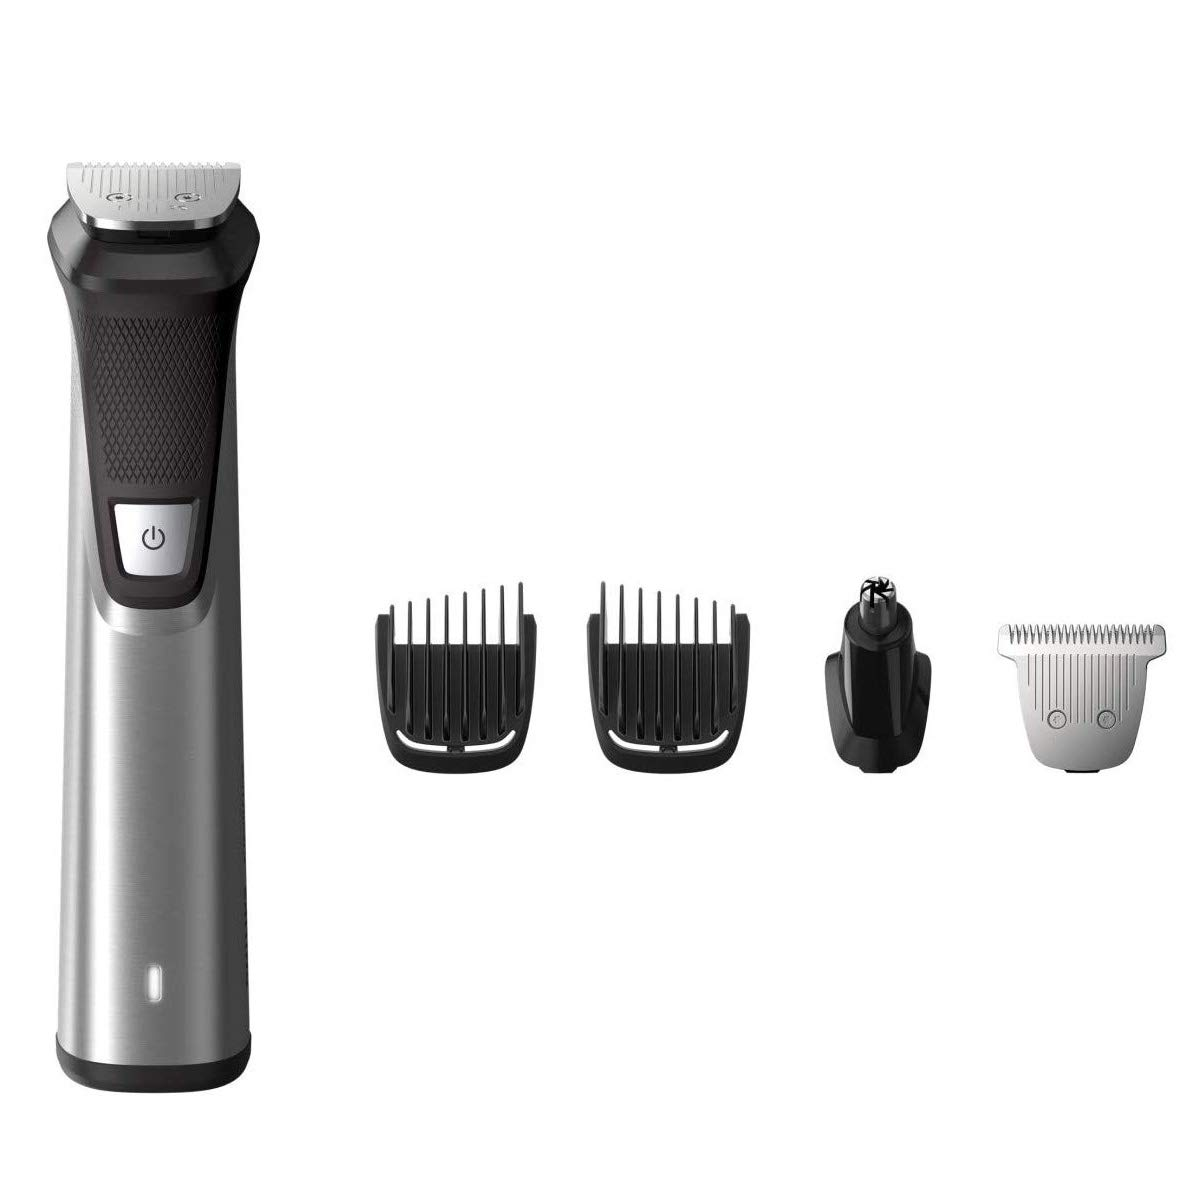 Nose Hair Remover Tool Mini, Precision Groomer, Hair Trimmer For Women Face Bikini Area, Ear Nose Hair Beard Brow Trimmer Clipper Waterproof, Nose Hair Trimmer Kit Best Seller Rated Small